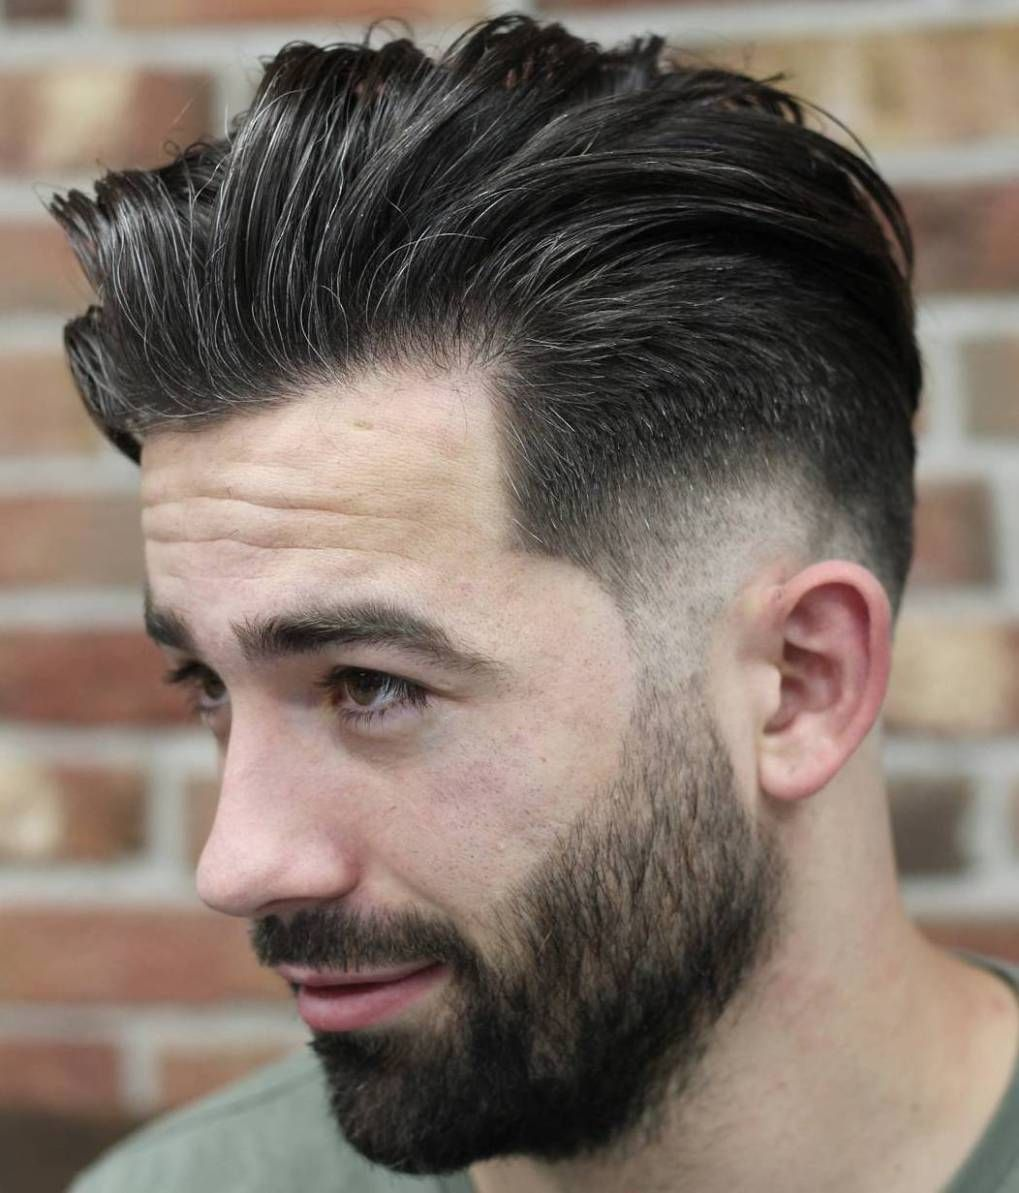 Short haircuts for men over 60 best hairstyle for men with wavy hair  full bangs hairstyle